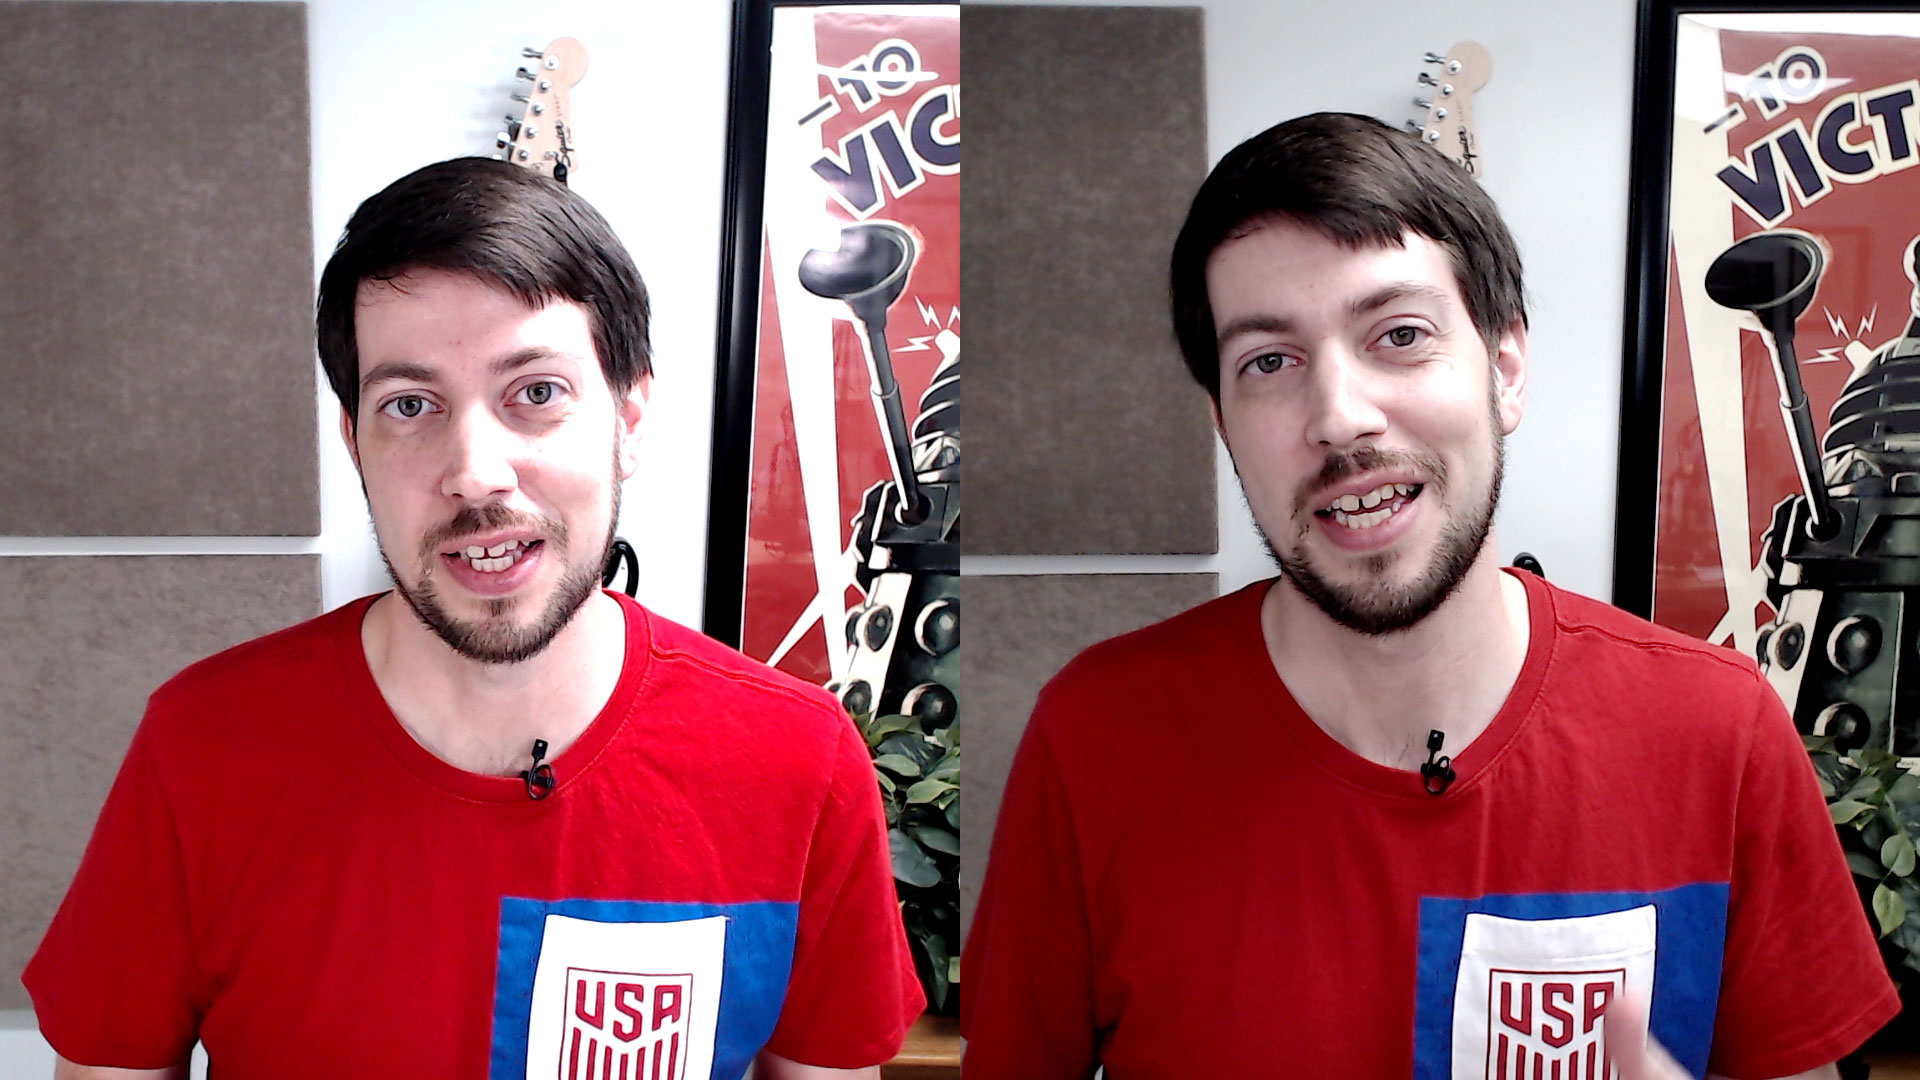 Jeff - Webcam before and after lighting change